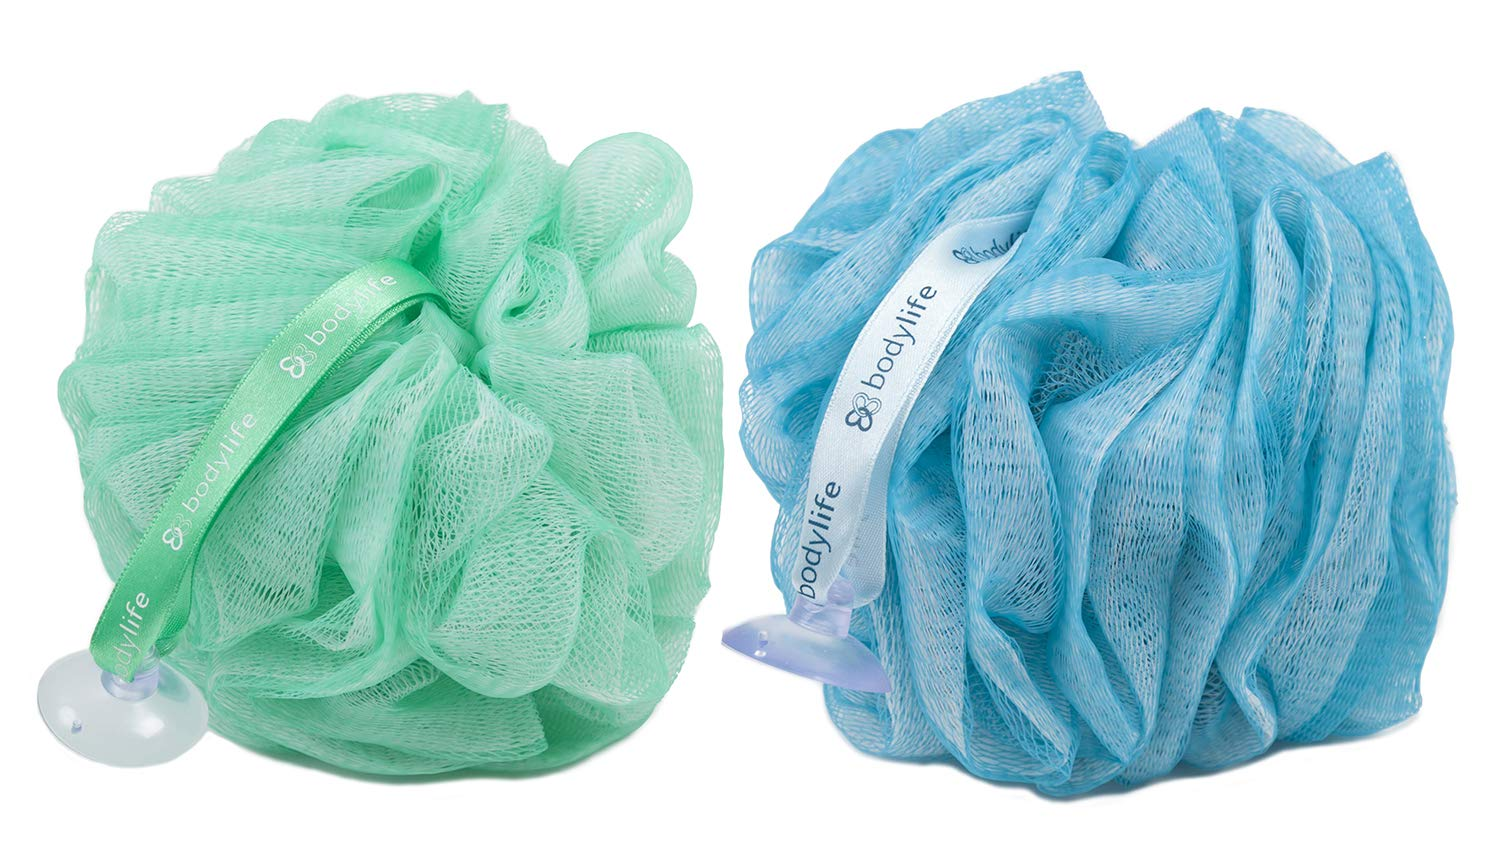 Bodylife Exfoliating Bath & Shower Body Puff/Scrunchie/Buffer Kingfisher Blue & Green 55g Twin Pack